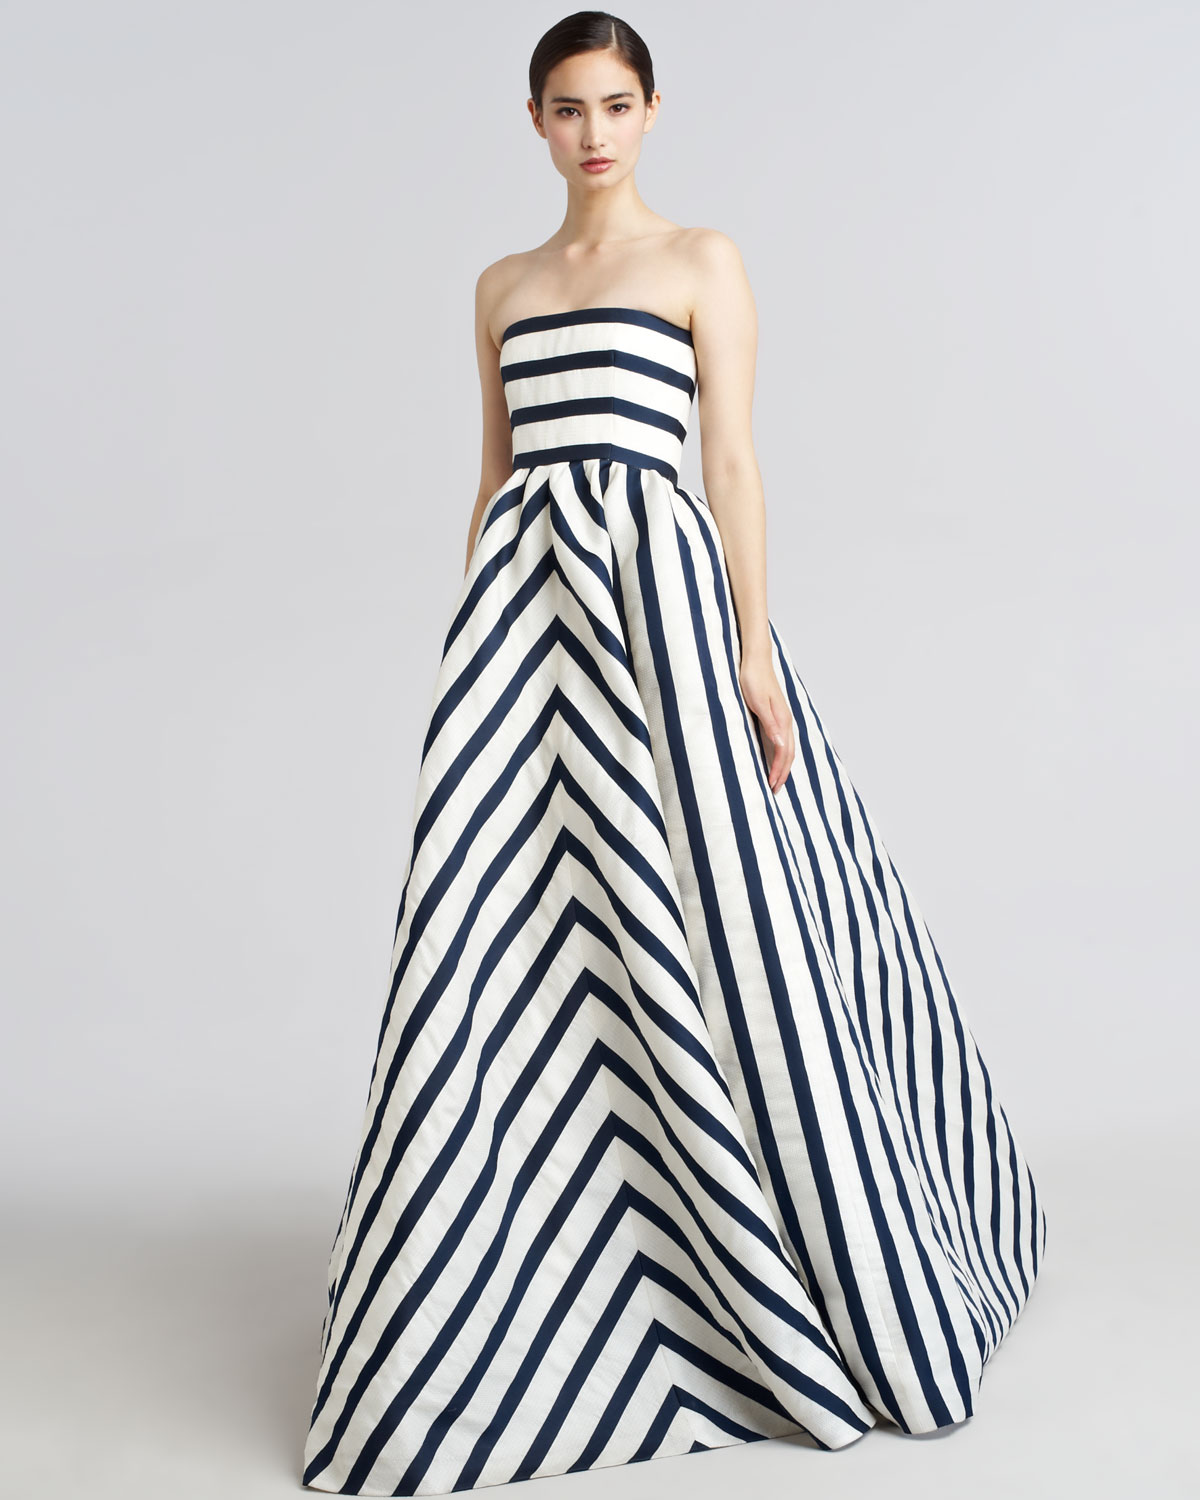 Lyst - Oscar De La Renta Strapless Striped Gazar Gown in Blue